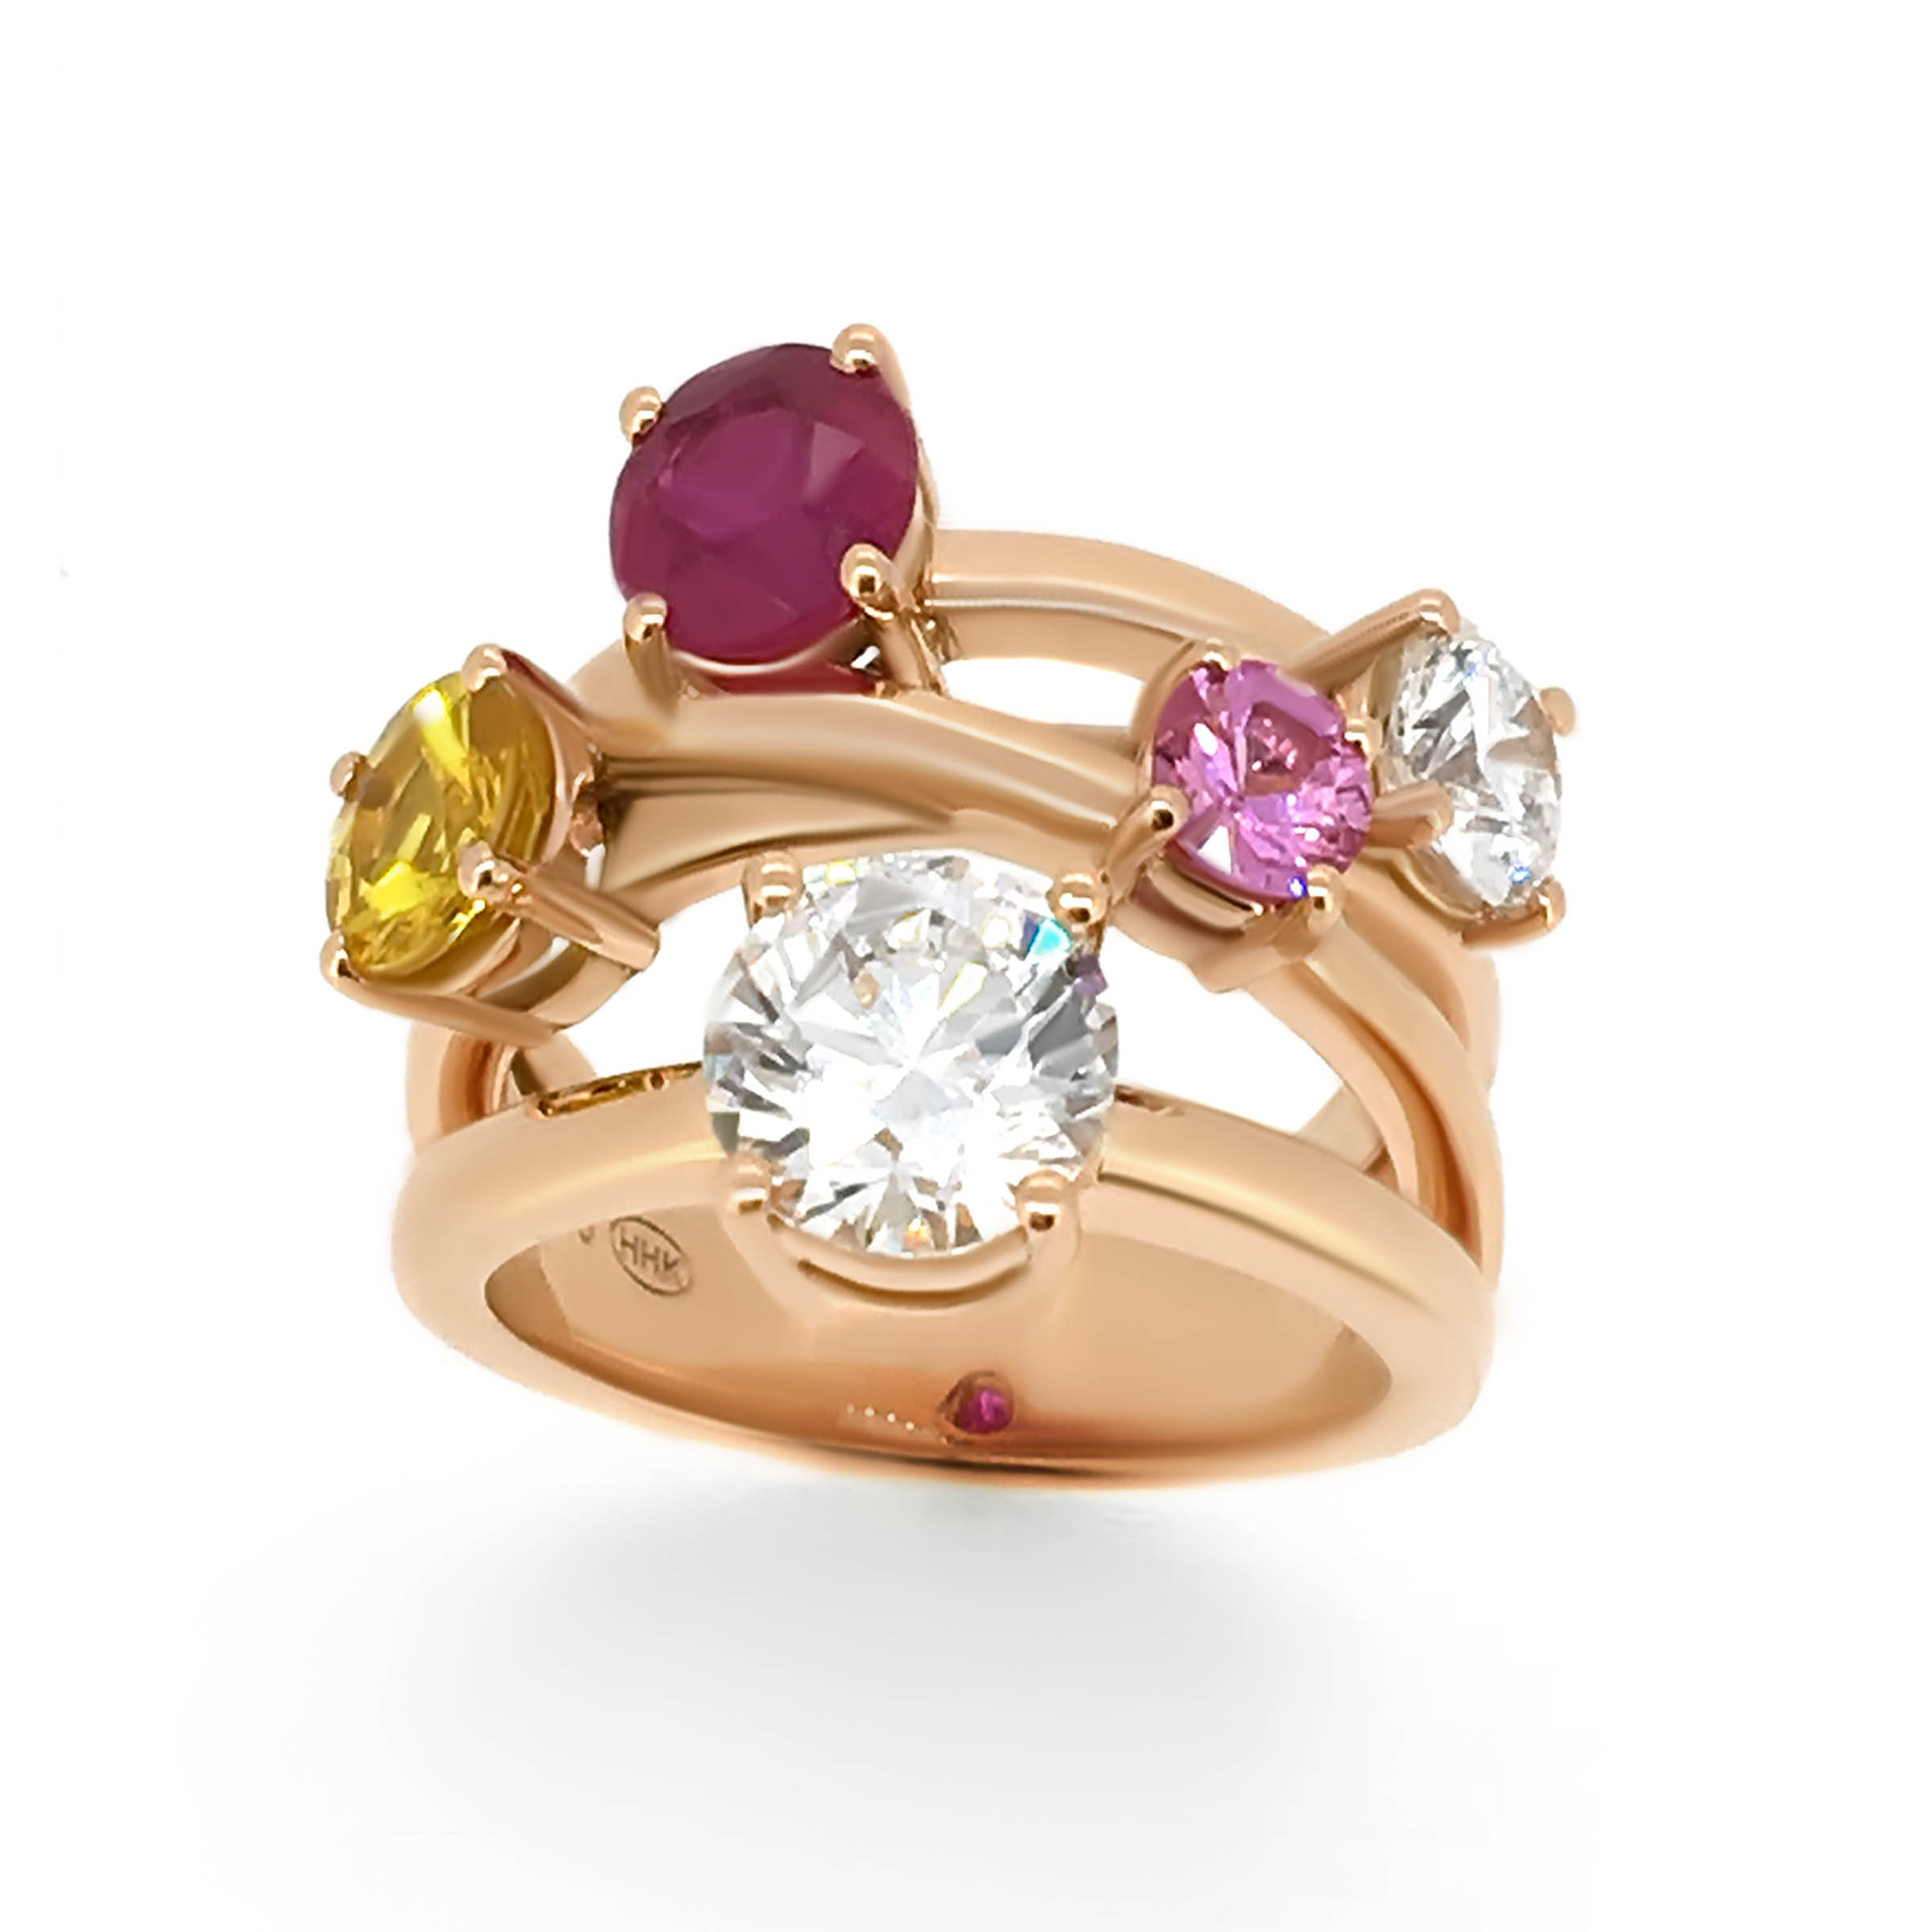 diamond and gem dress ring- haywards of hong kong